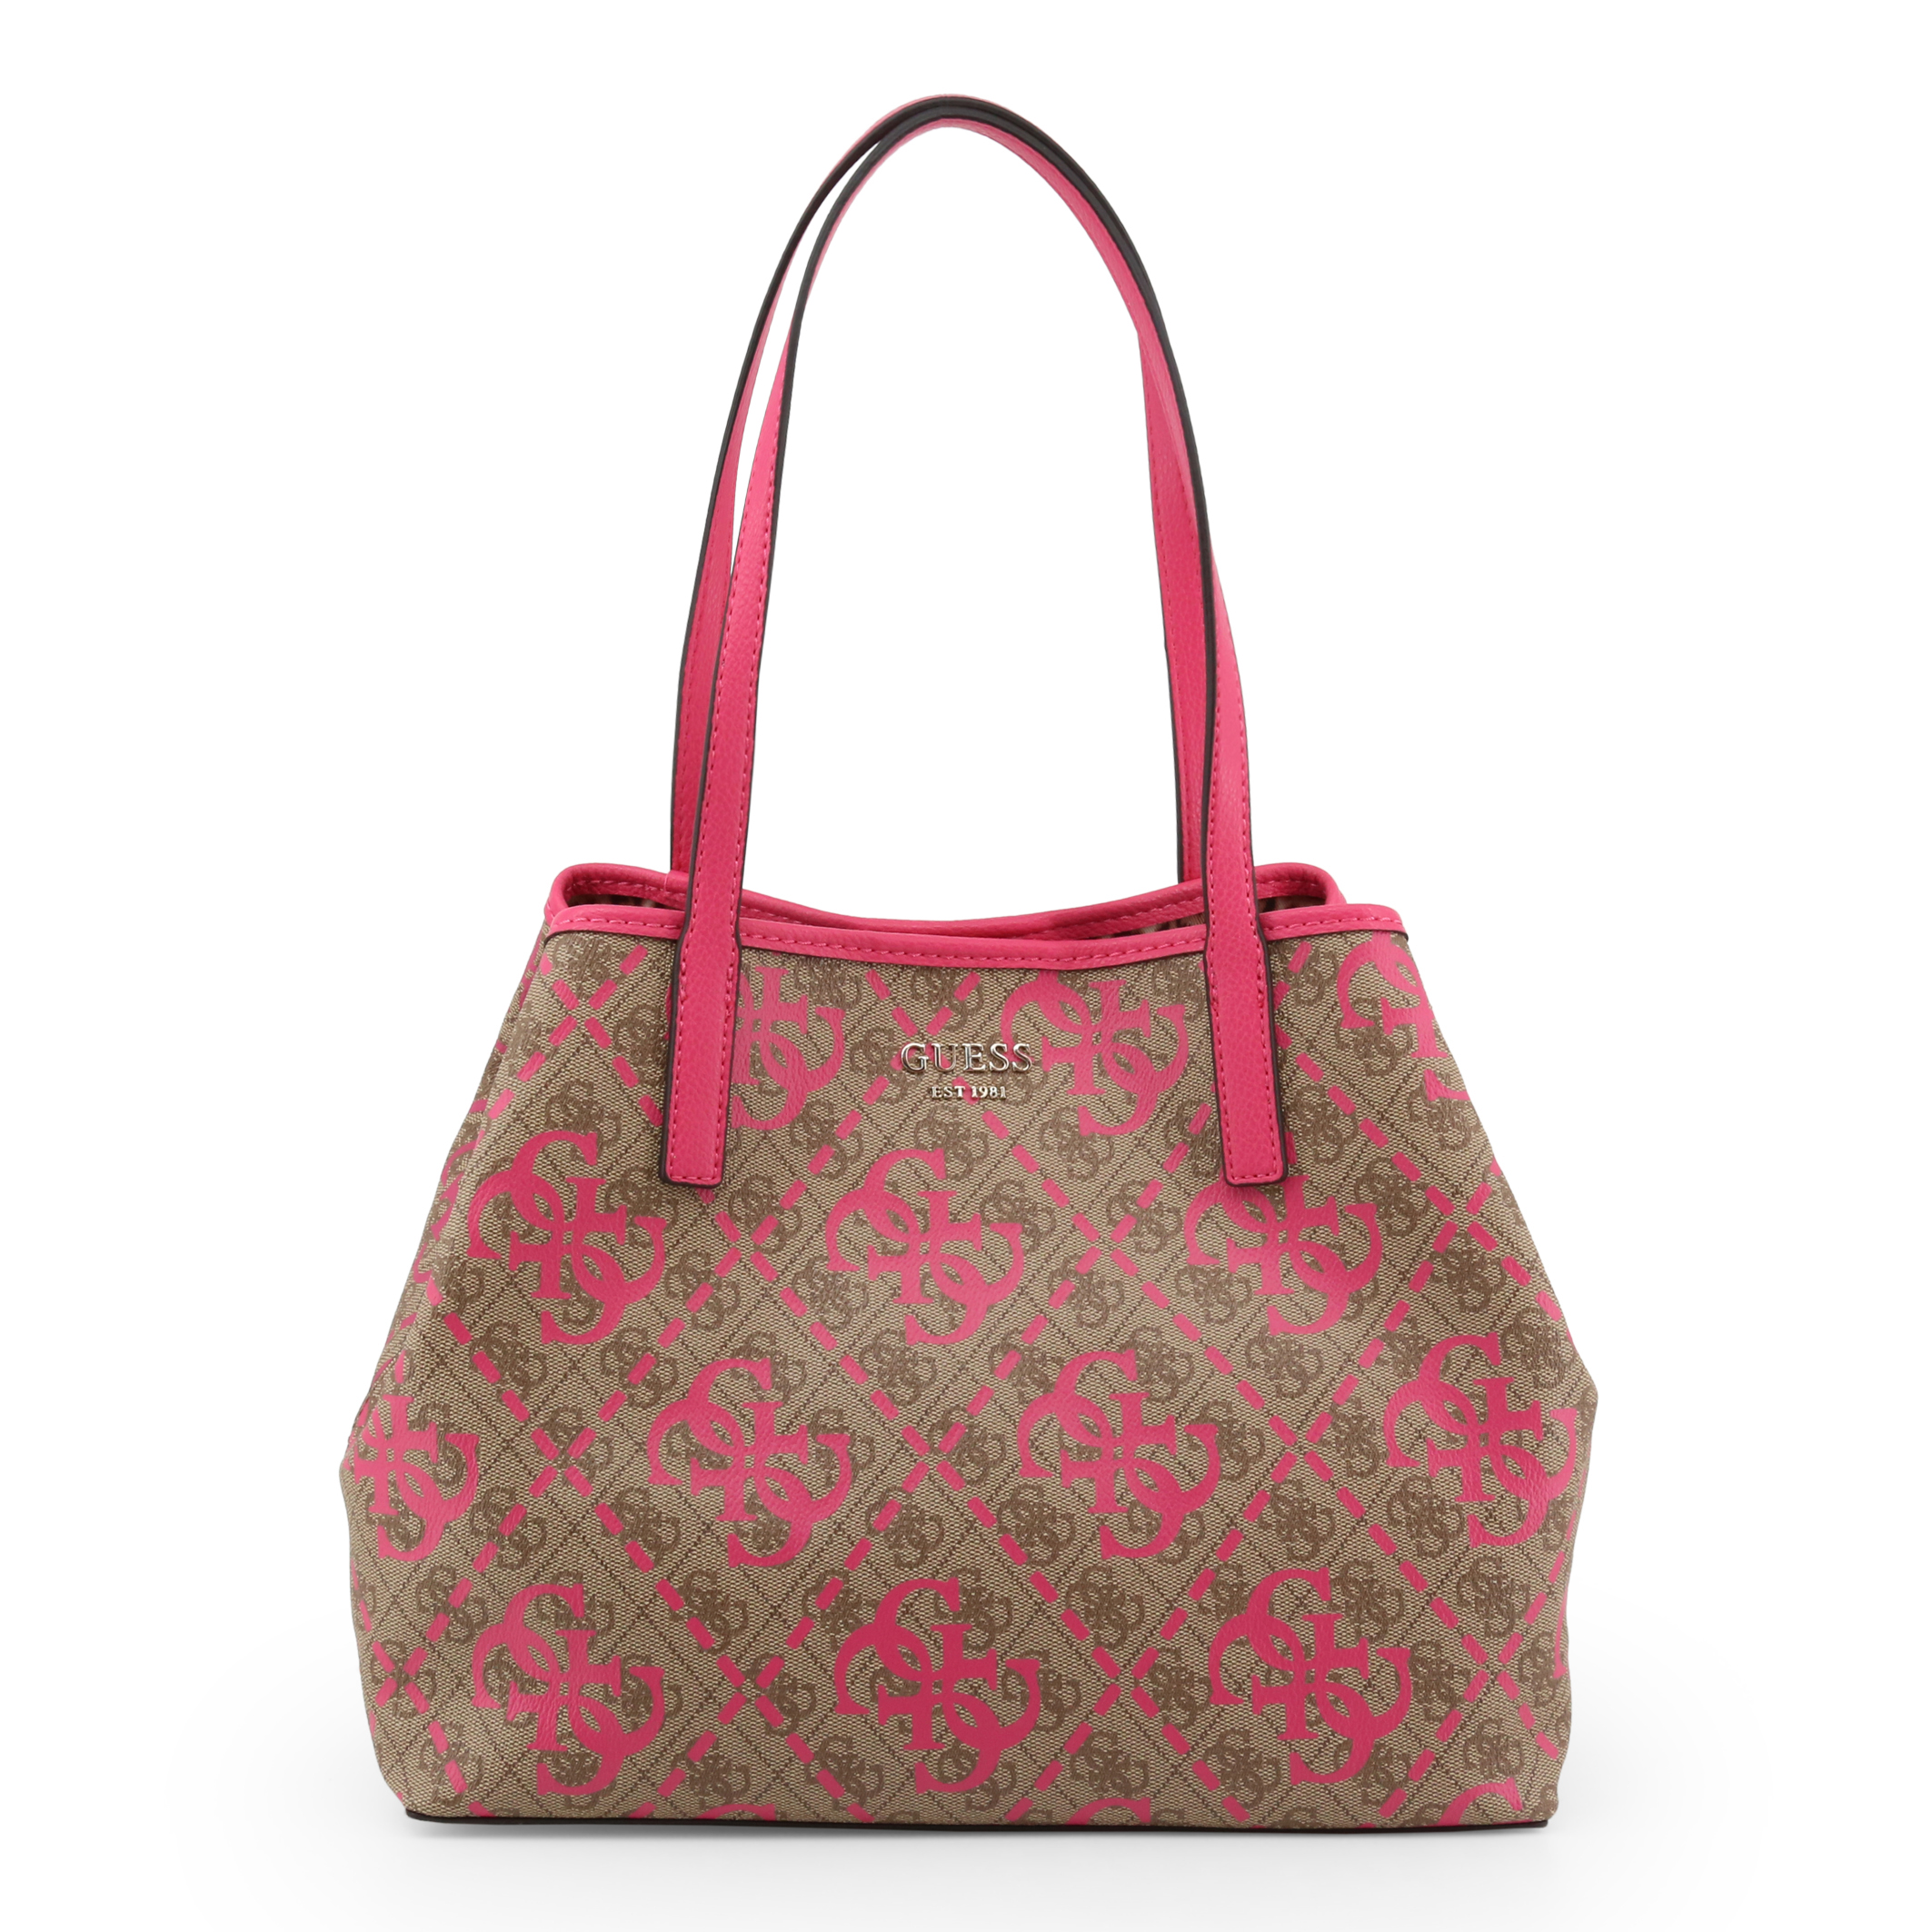 Shopping bag Guess HWSW69_95230 Donna Marrone 101393